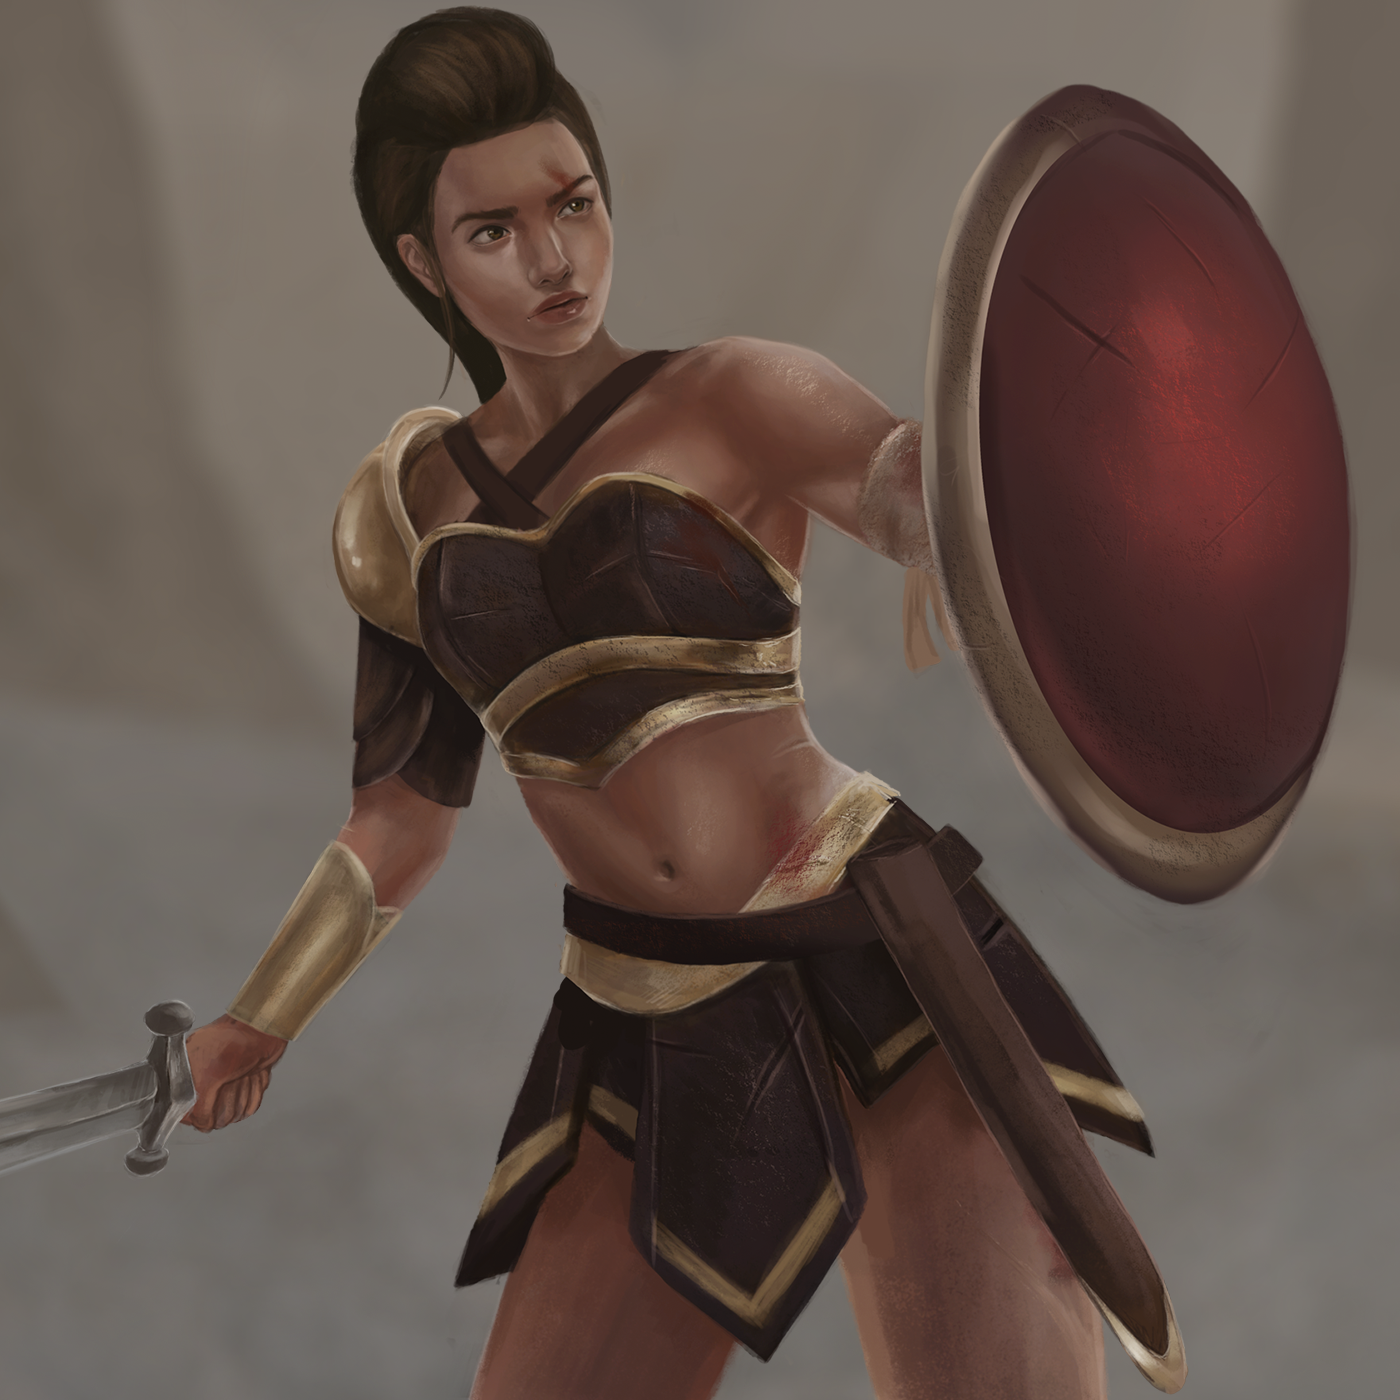 Episode 16: Amazons - The Most Feared Warrior Women of Greek Mythology